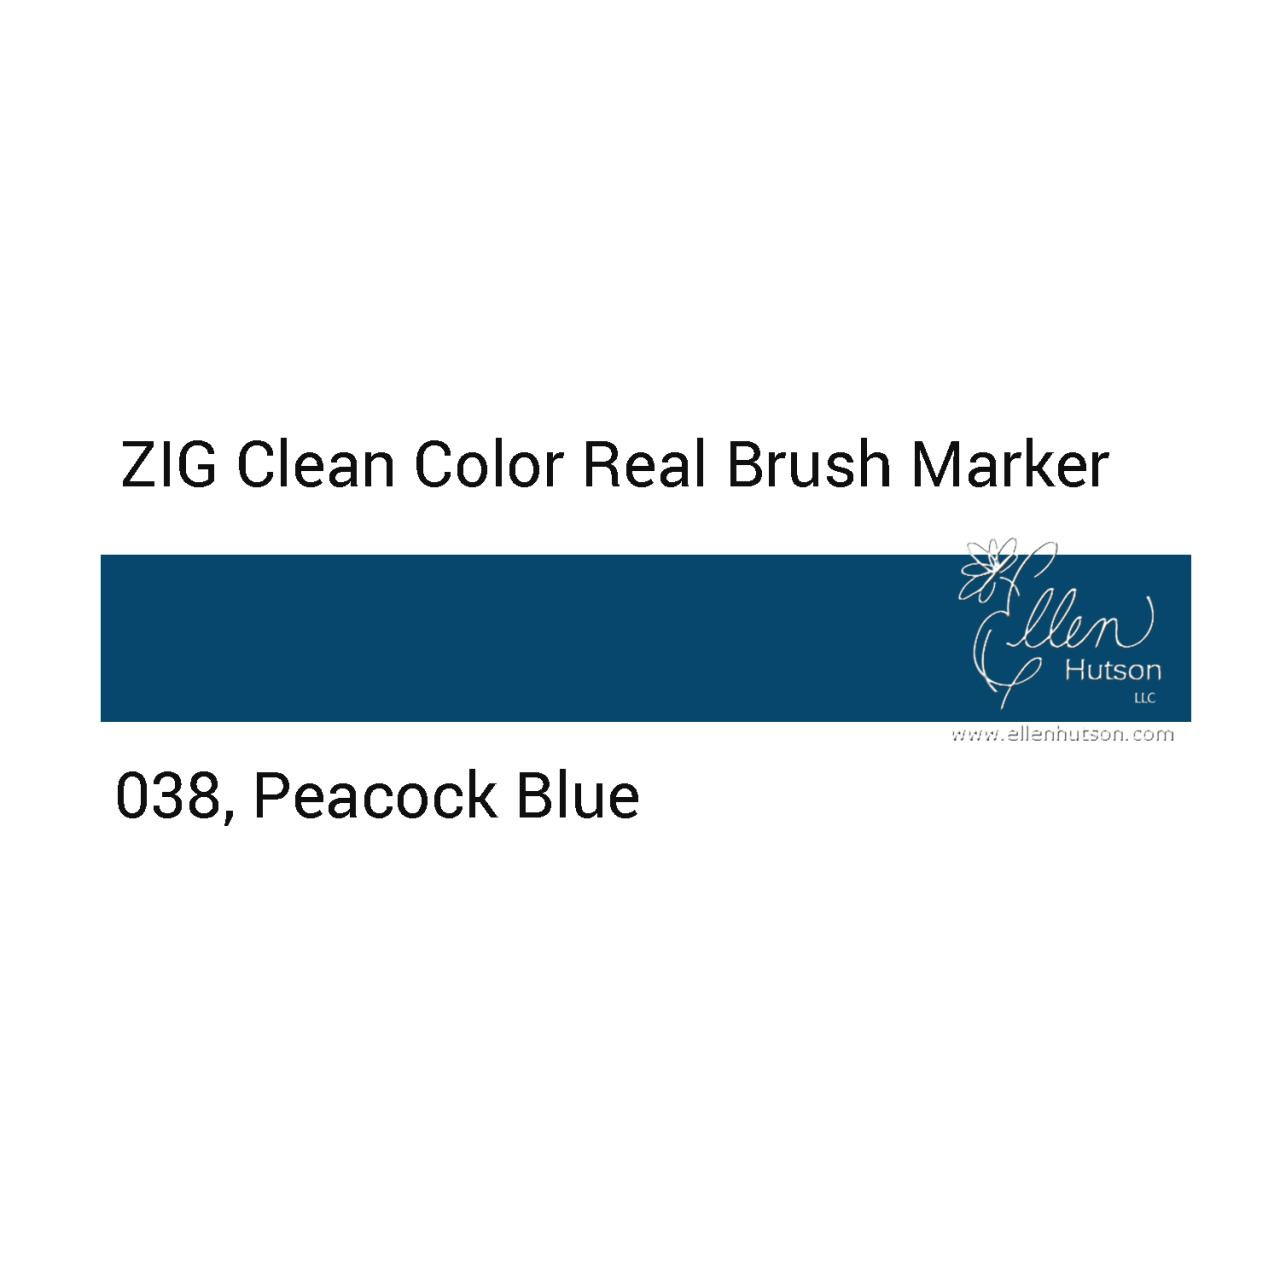 038 - Peacock Blue, ZIG Clean Color Real Brush Marker -